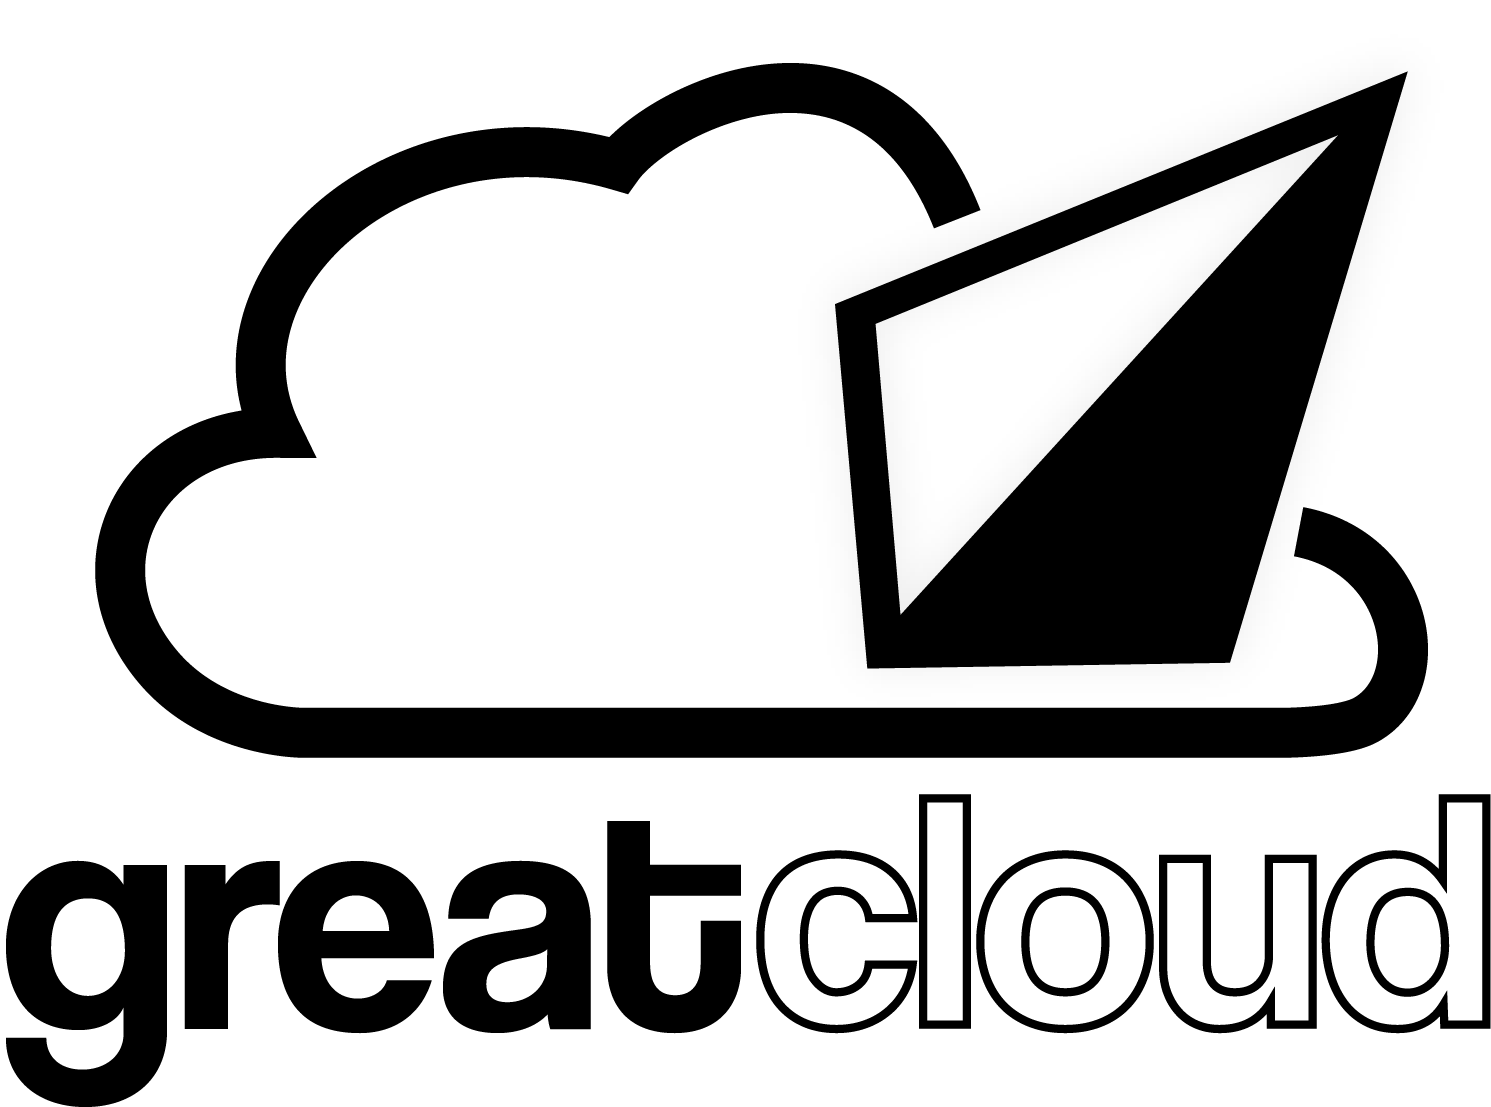 GREATCLOUD-WITH-TEXT in Black